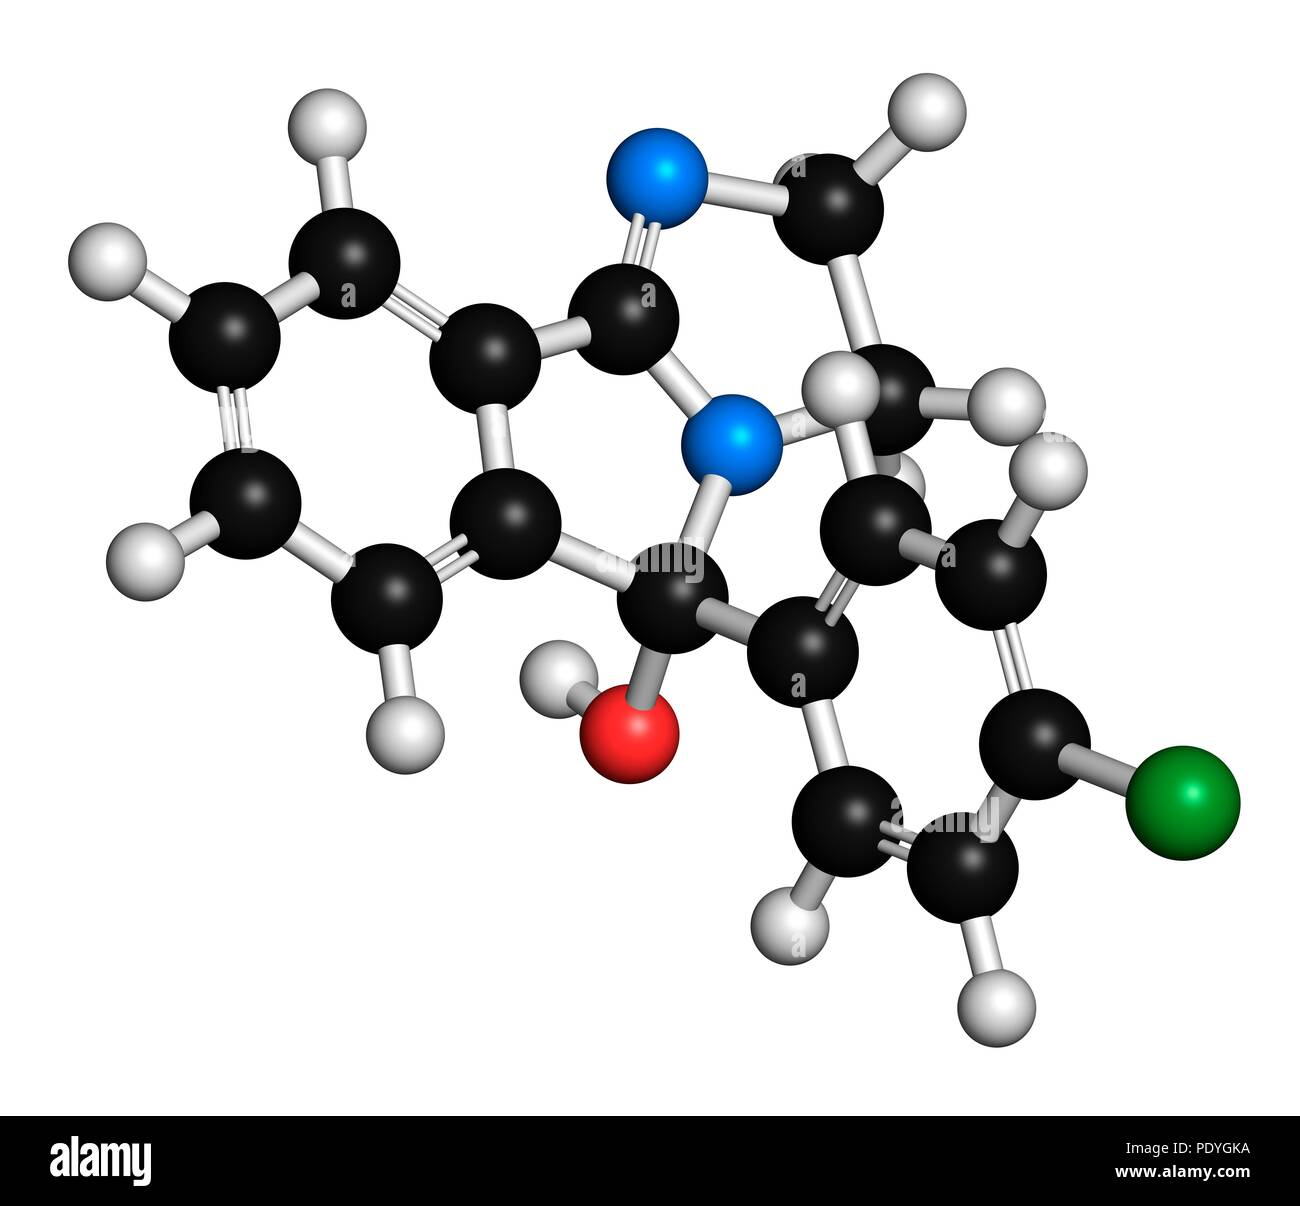 Mazindol appetite suppressant drug molecule. 3D rendering. Atoms are represented as spheres with conventional colour-coding: hydrogen (white), carbon (black), nitrogen (blue), oxygen (red), chlorine (green). - Stock Image